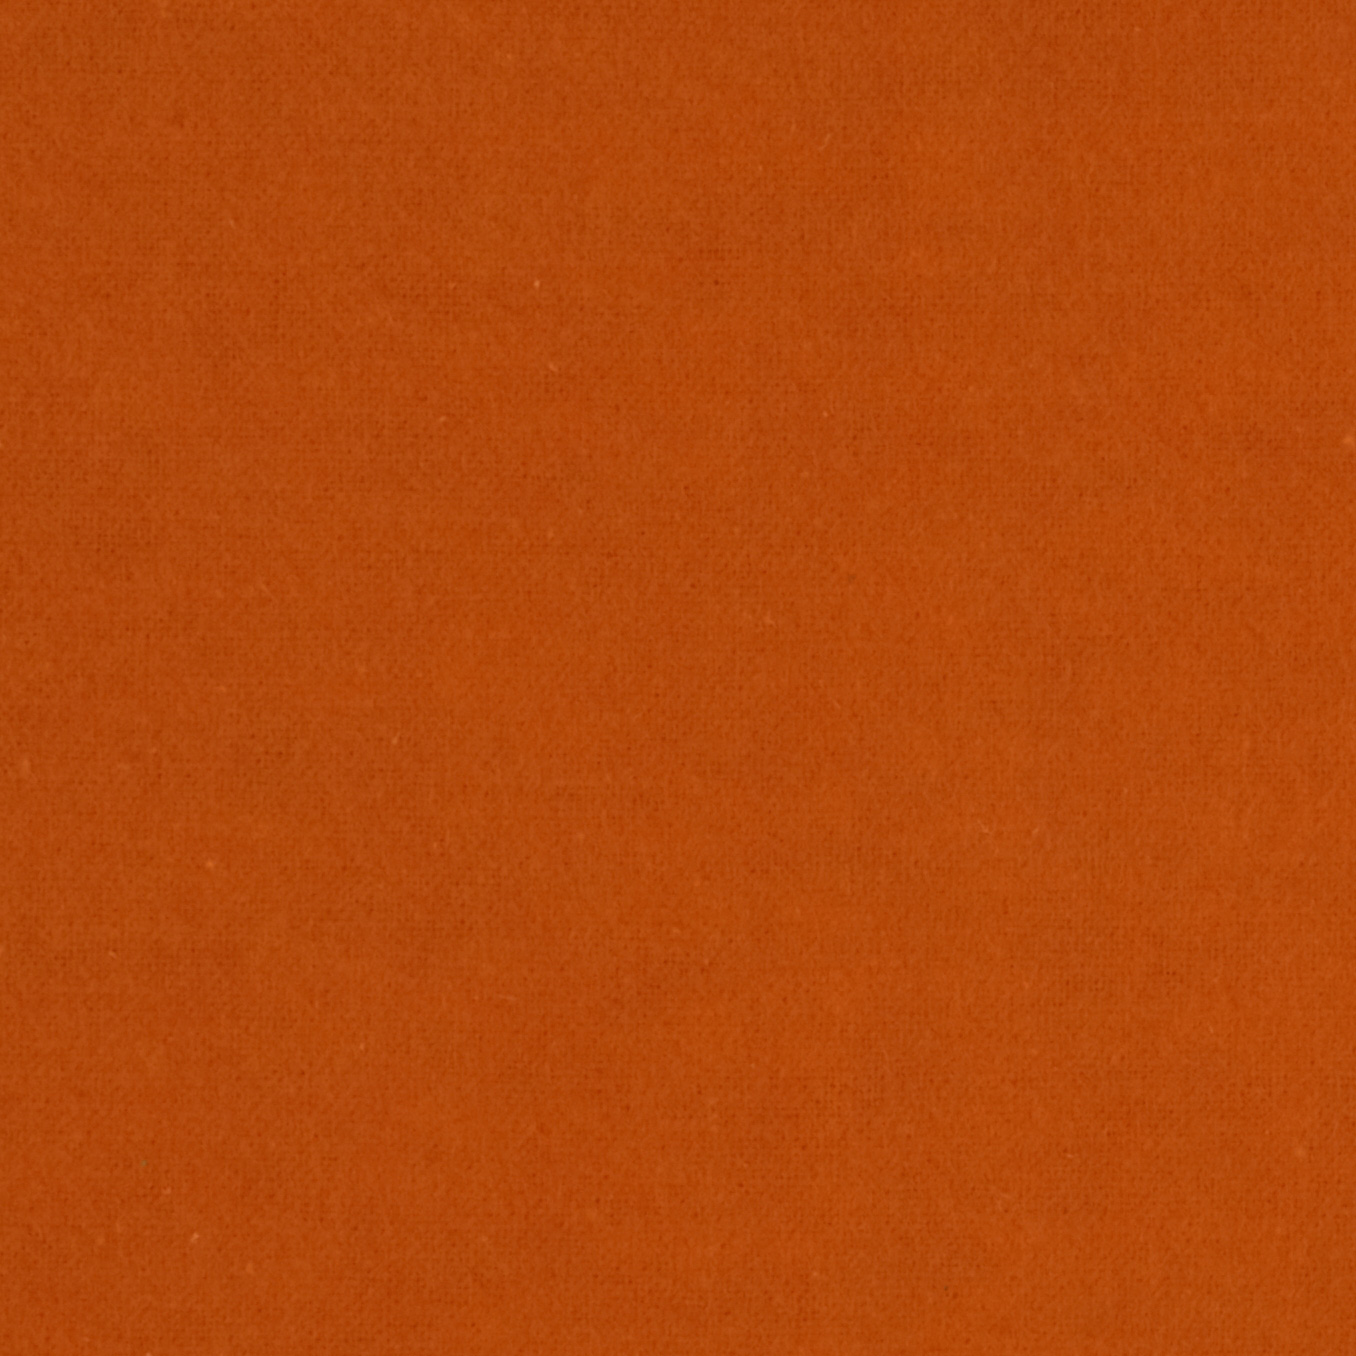 Super Softly Flannel Orange Fabric